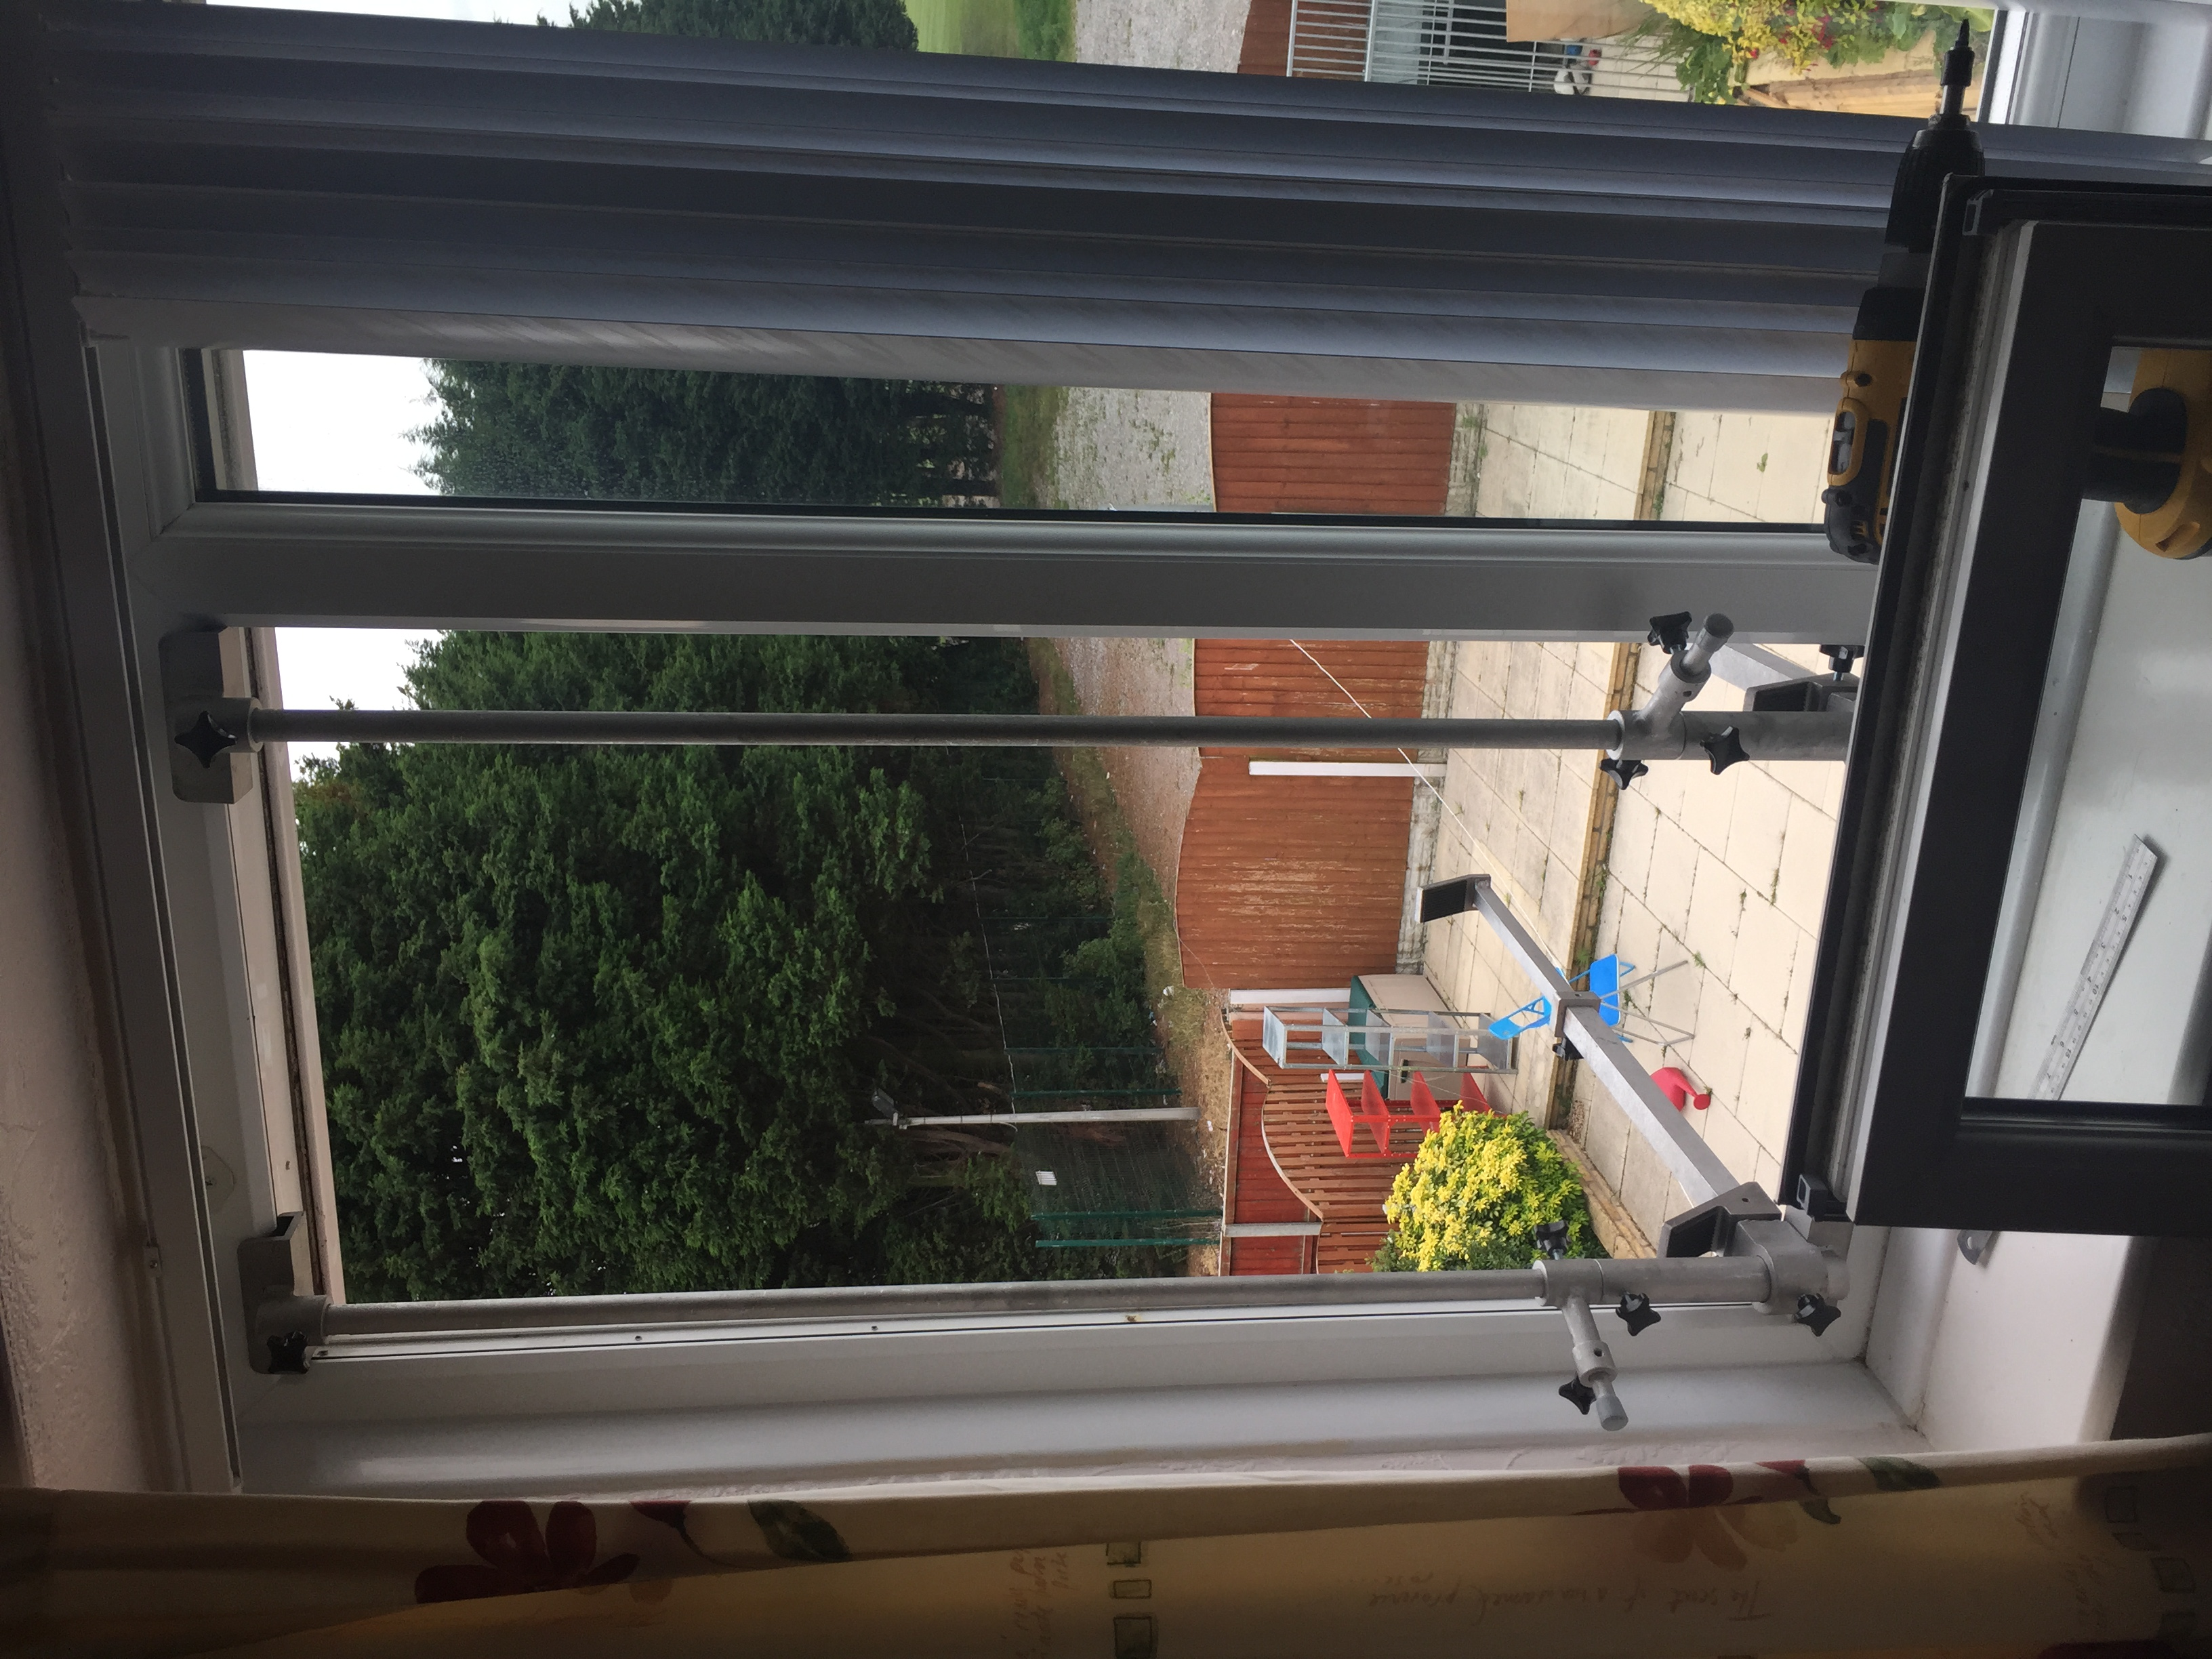 THE SASH MAN WINDOW REPAIR Reviews - Angie's List